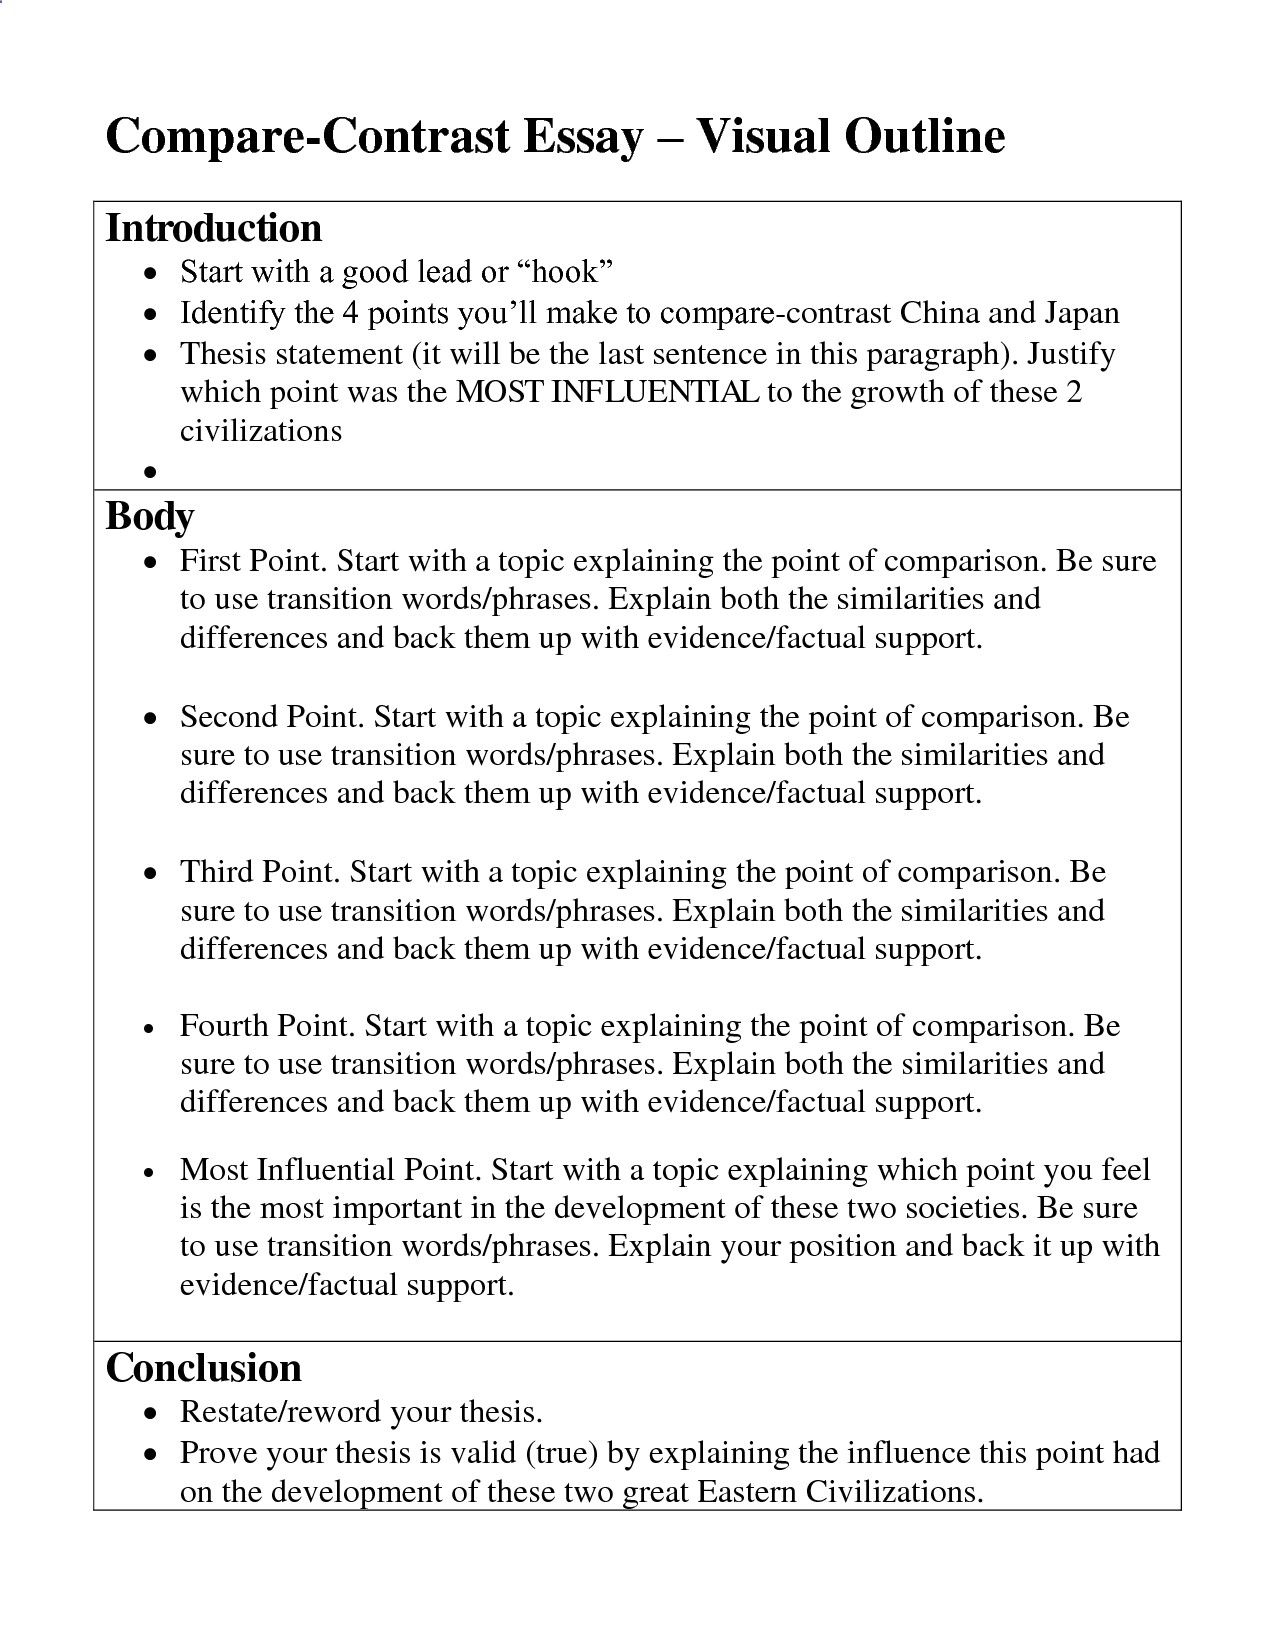 How To Write Essay Outline Template Reserch Paper I Search Research Worksheet Writing A 5 The Example Expository Introduction Paragraph For